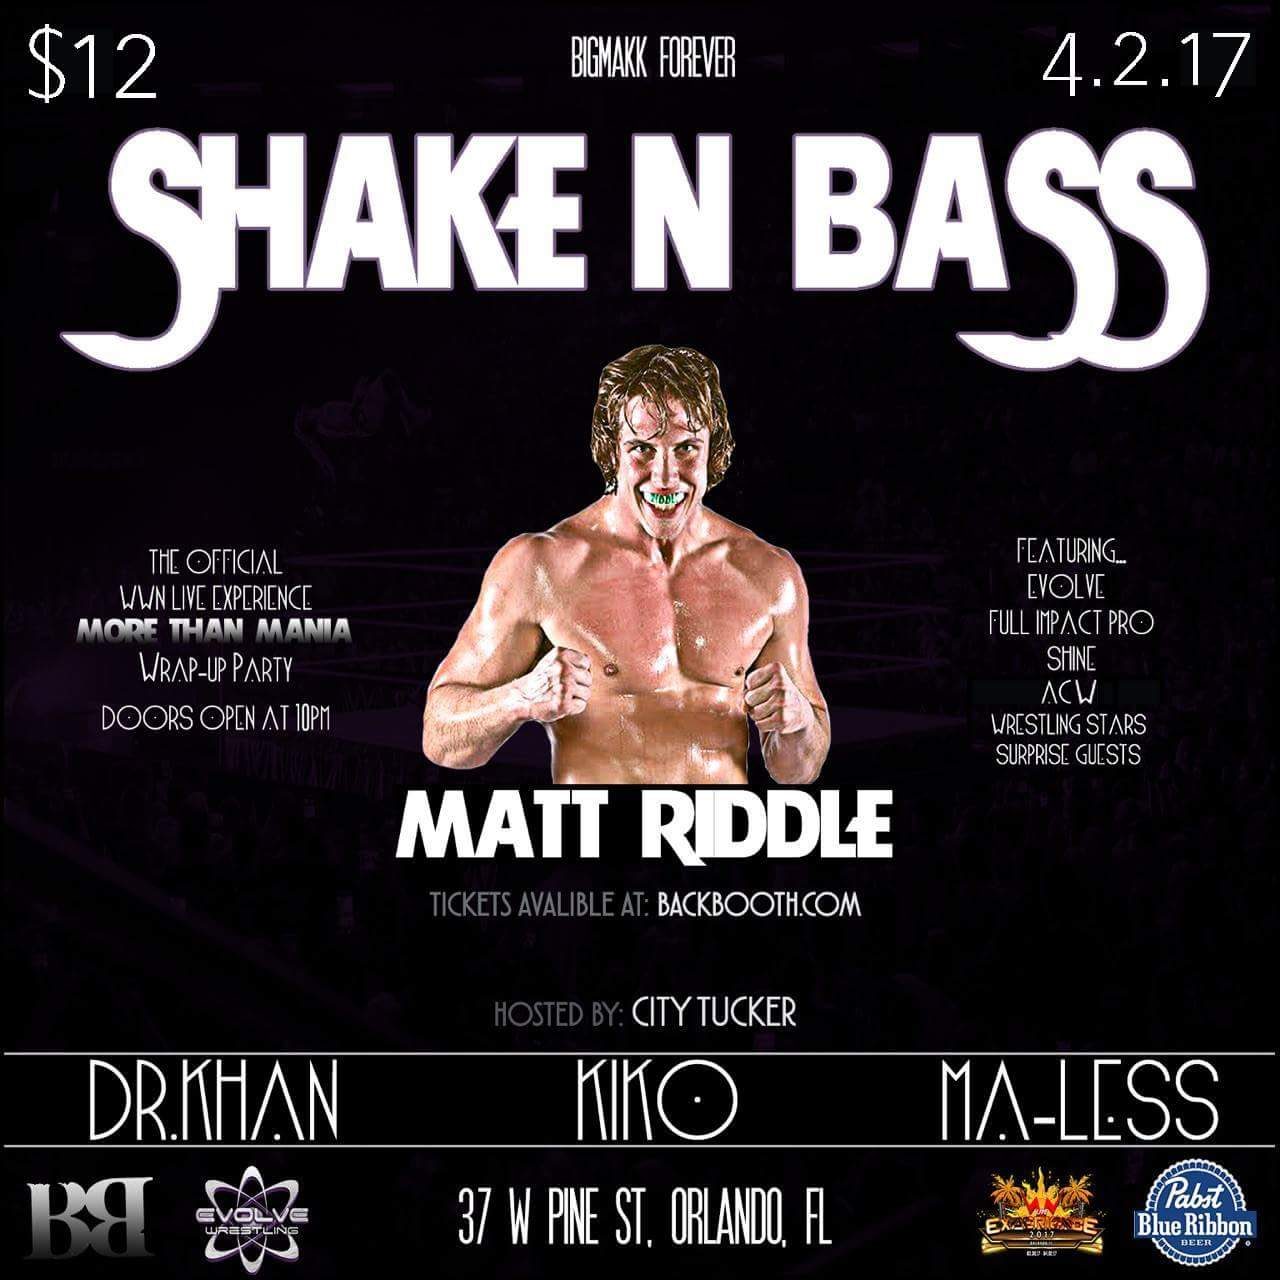 The Official WWNLive Experience 2017 After Party at Backbooth Featuring Matt Riddle!